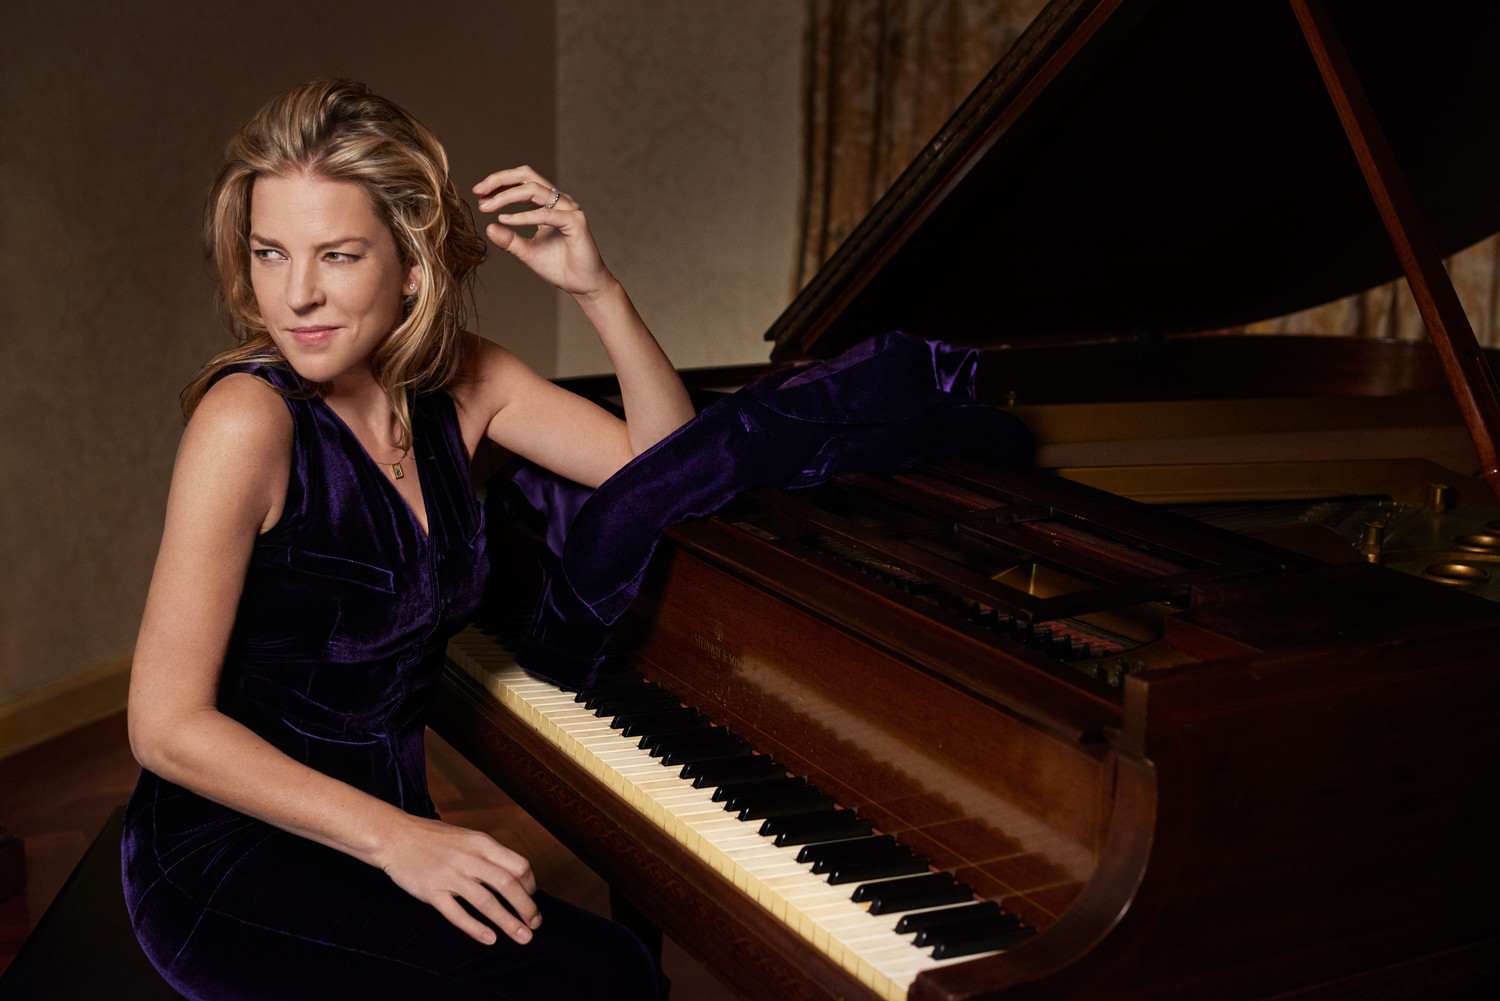 Diana Krall defines musical elegance with an appeal that is contemporary yet timeless.